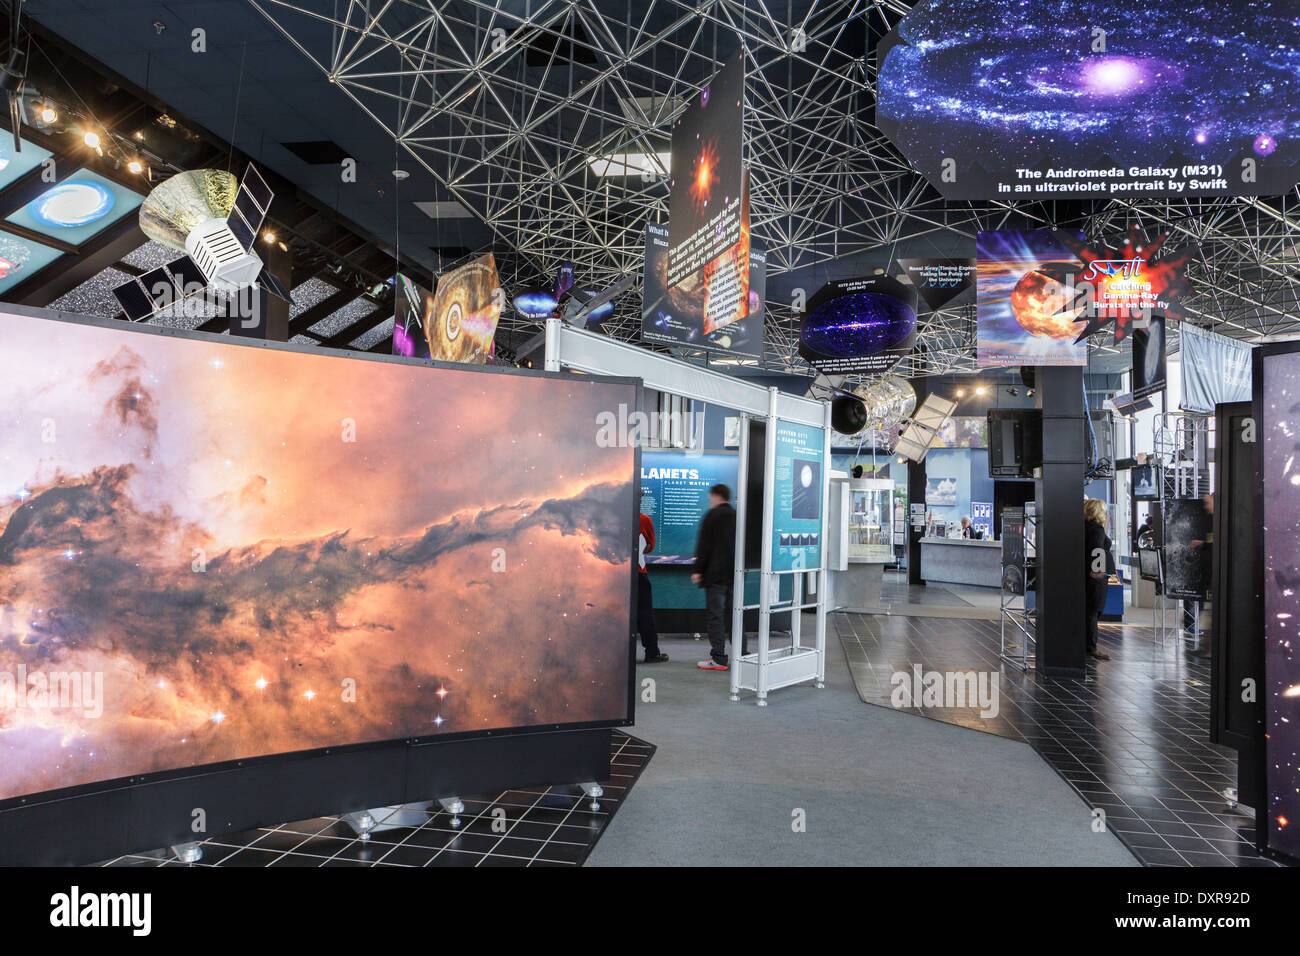 NASA Center in Maryland - Pics about space